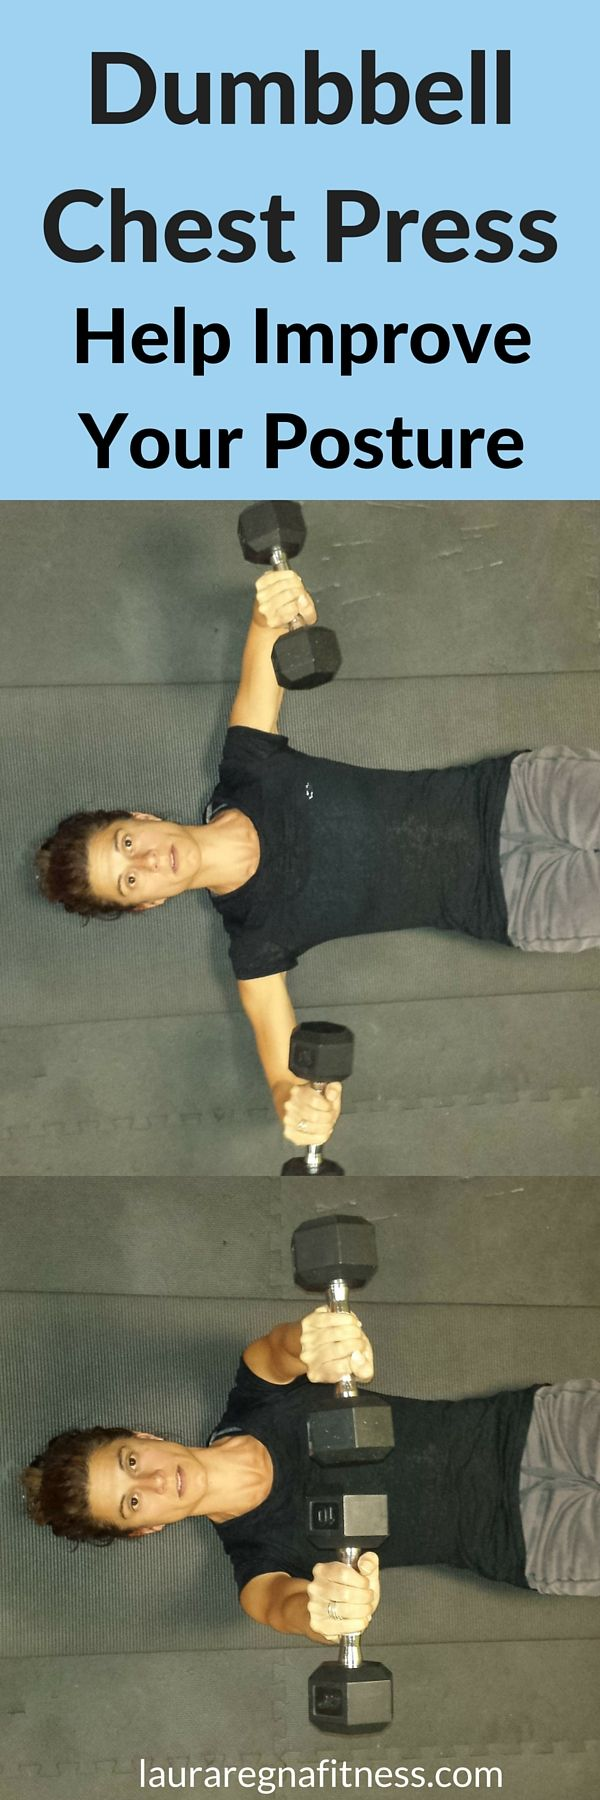 Dumbbell Chest Press: Help Improve Your Posture | Self ...